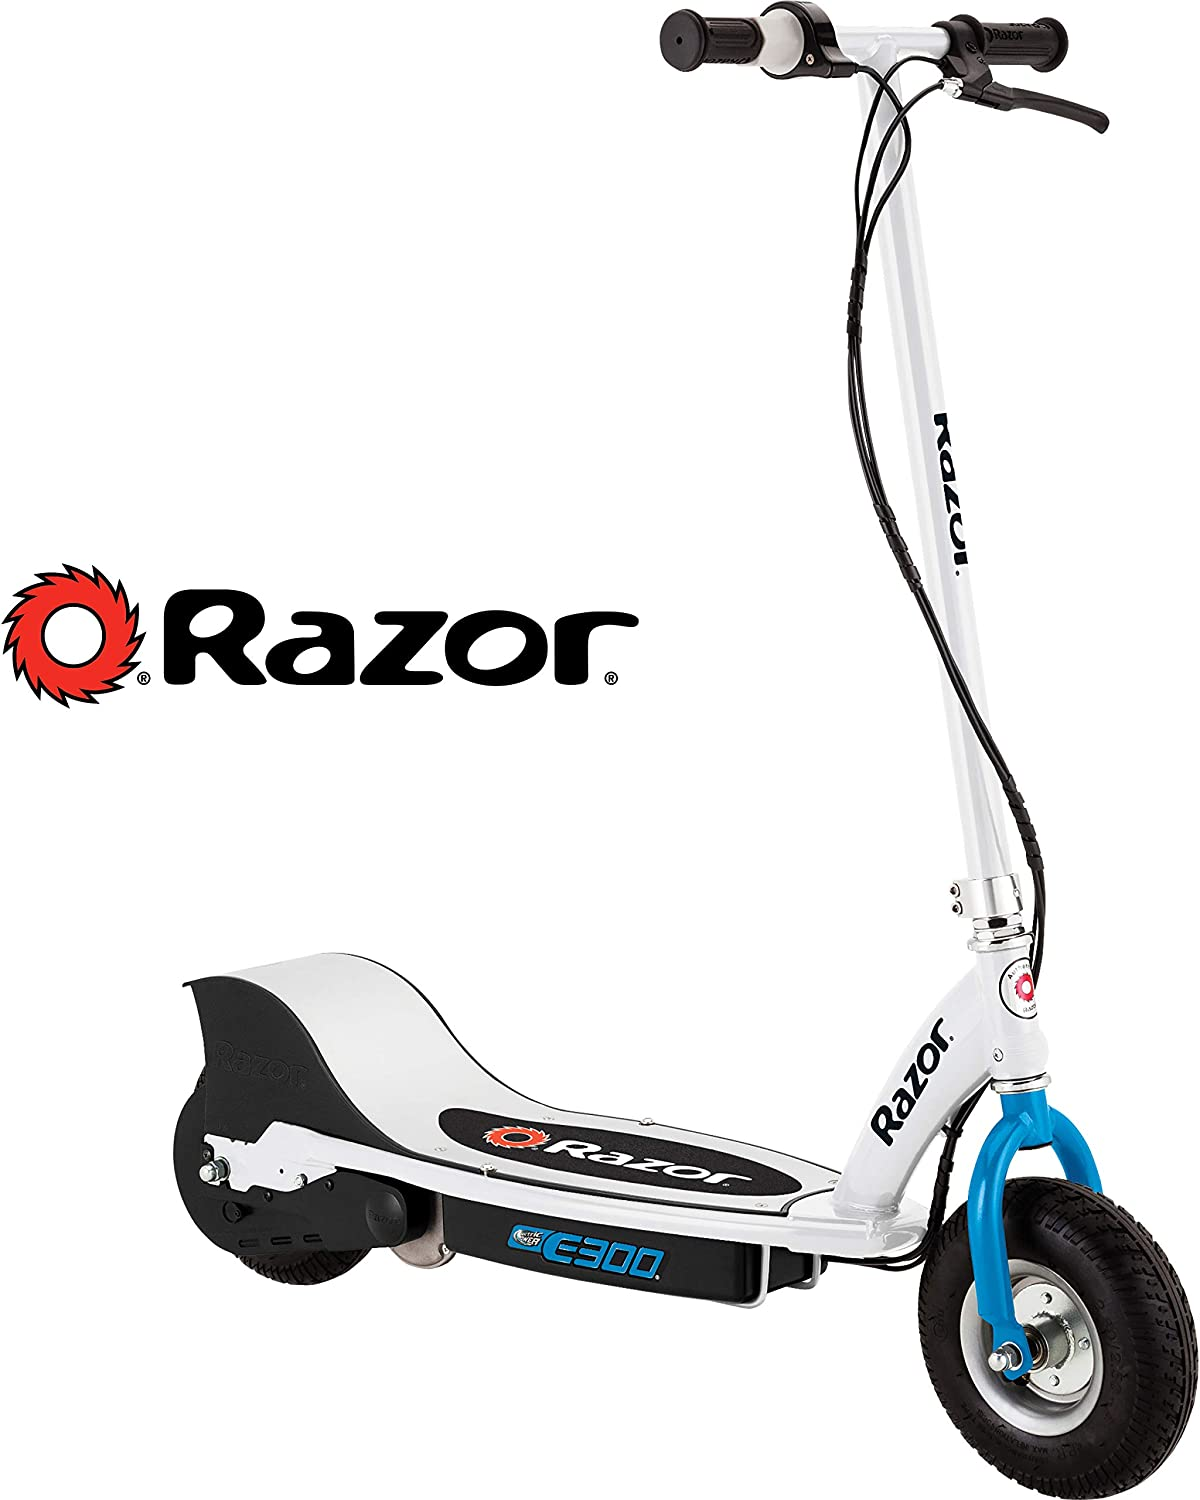 Razor E300 White & Blue Electric Scooter